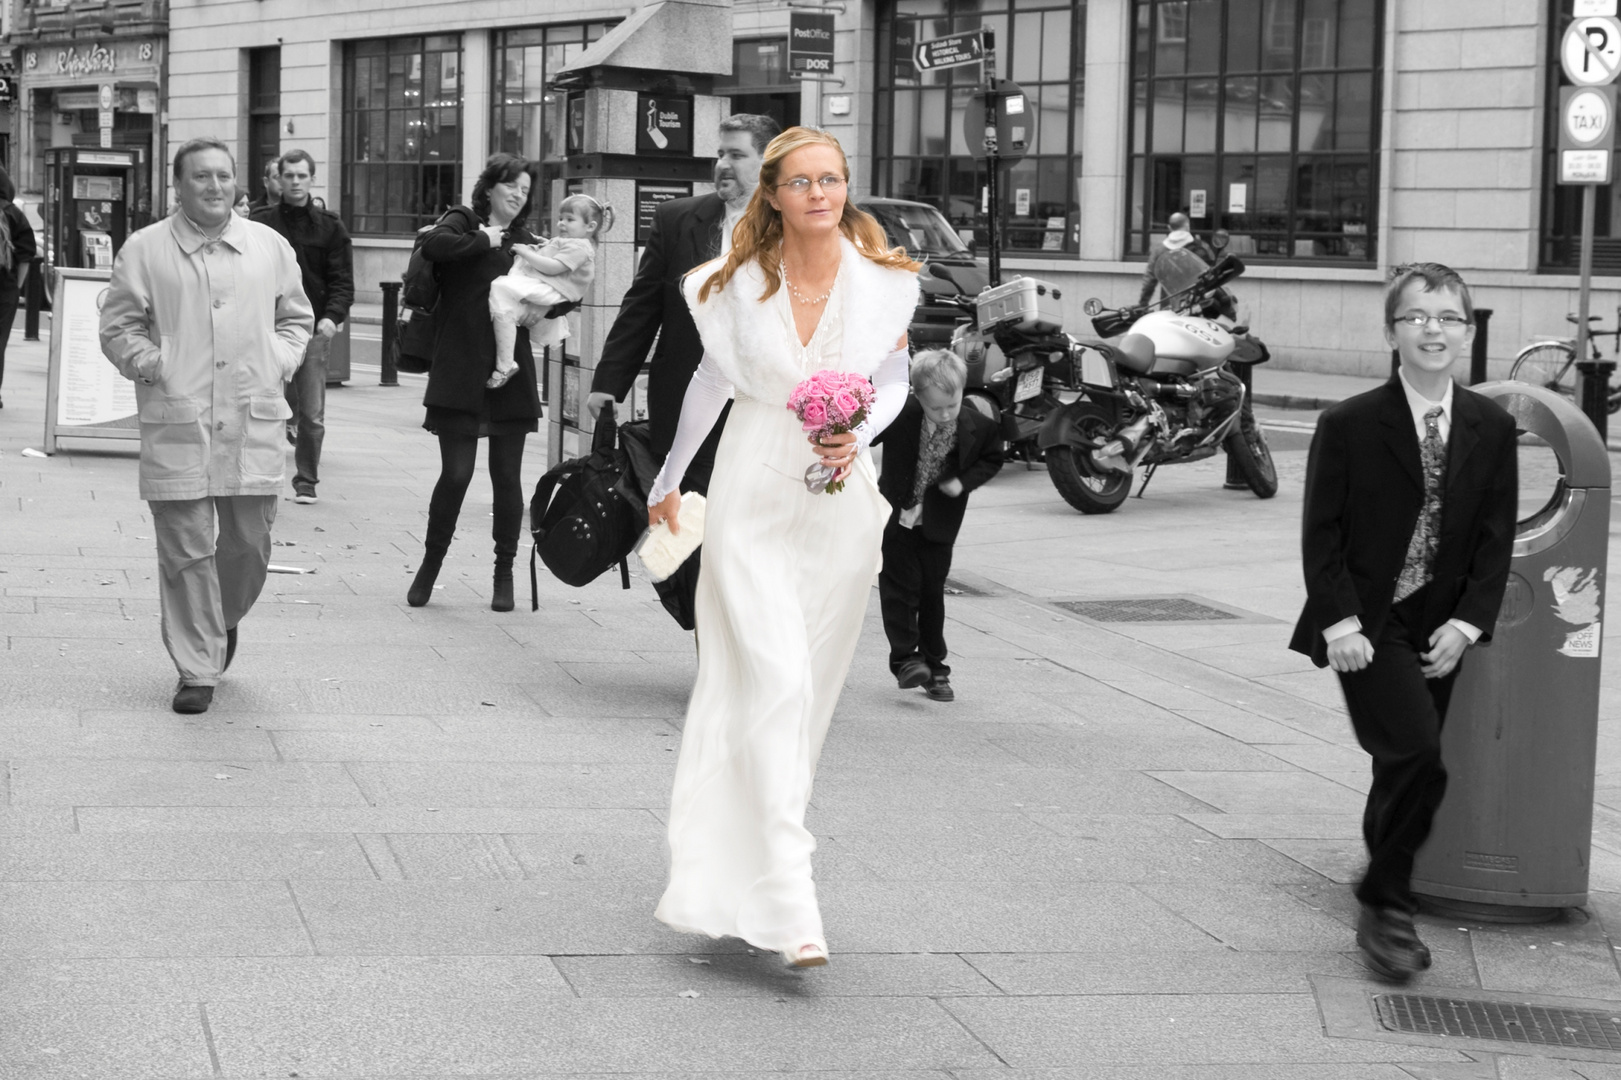 Nicola's wedding day